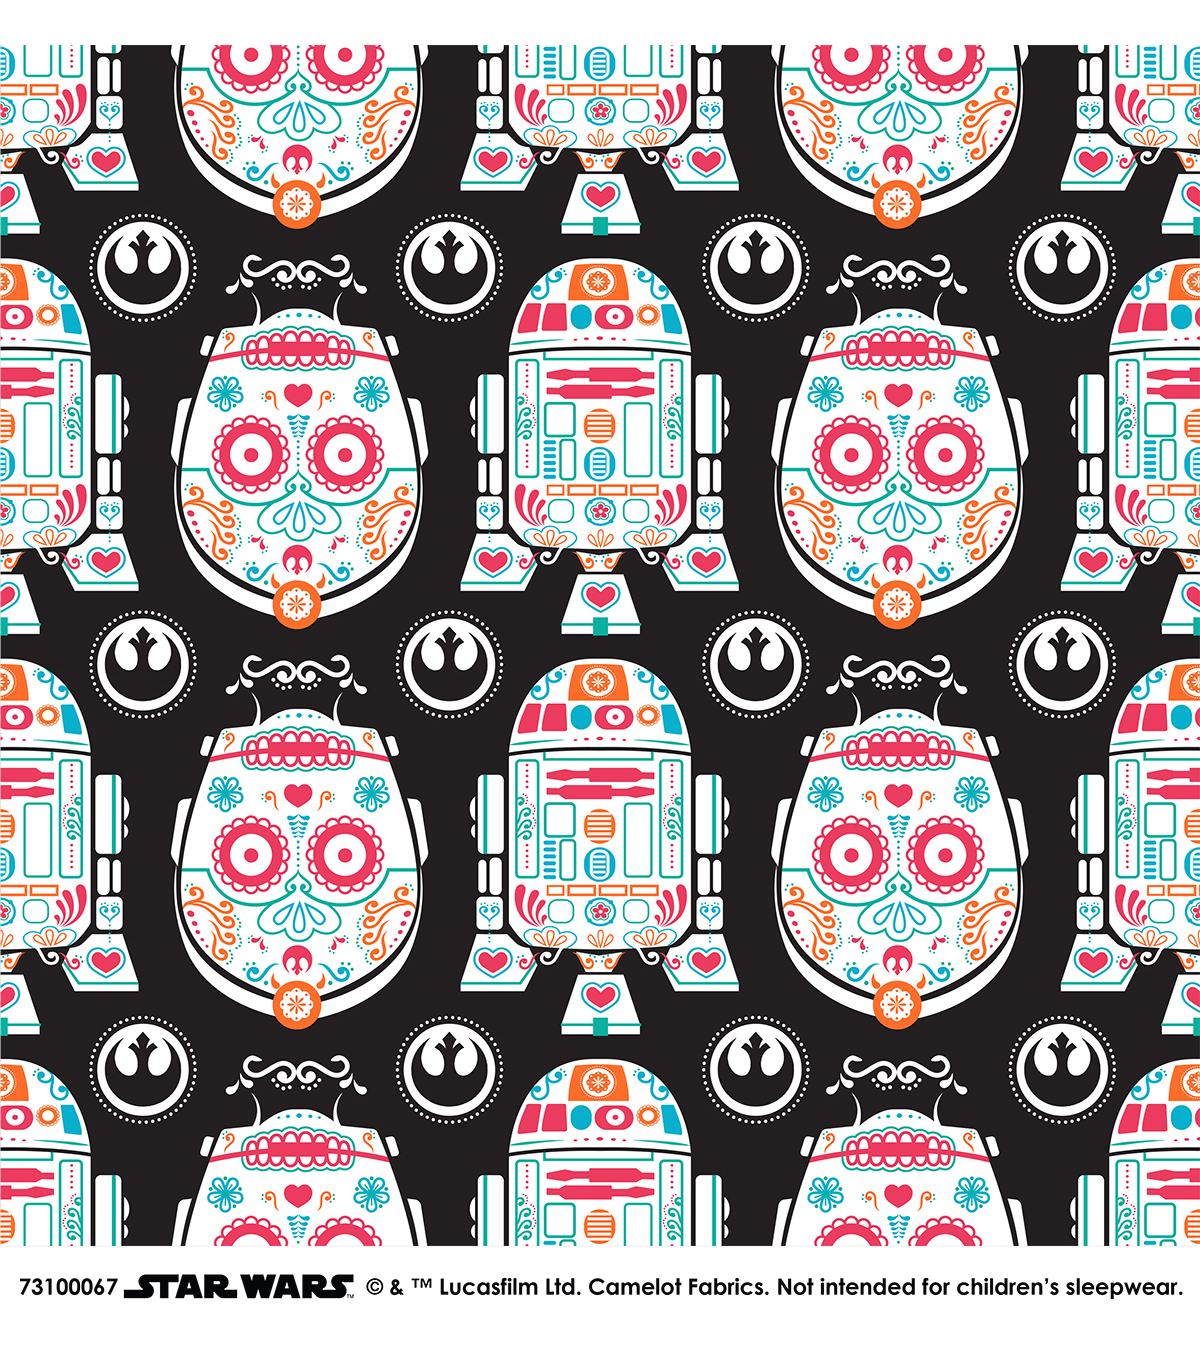 Star Wars Cotton Fabric -Character Sugar Skulls